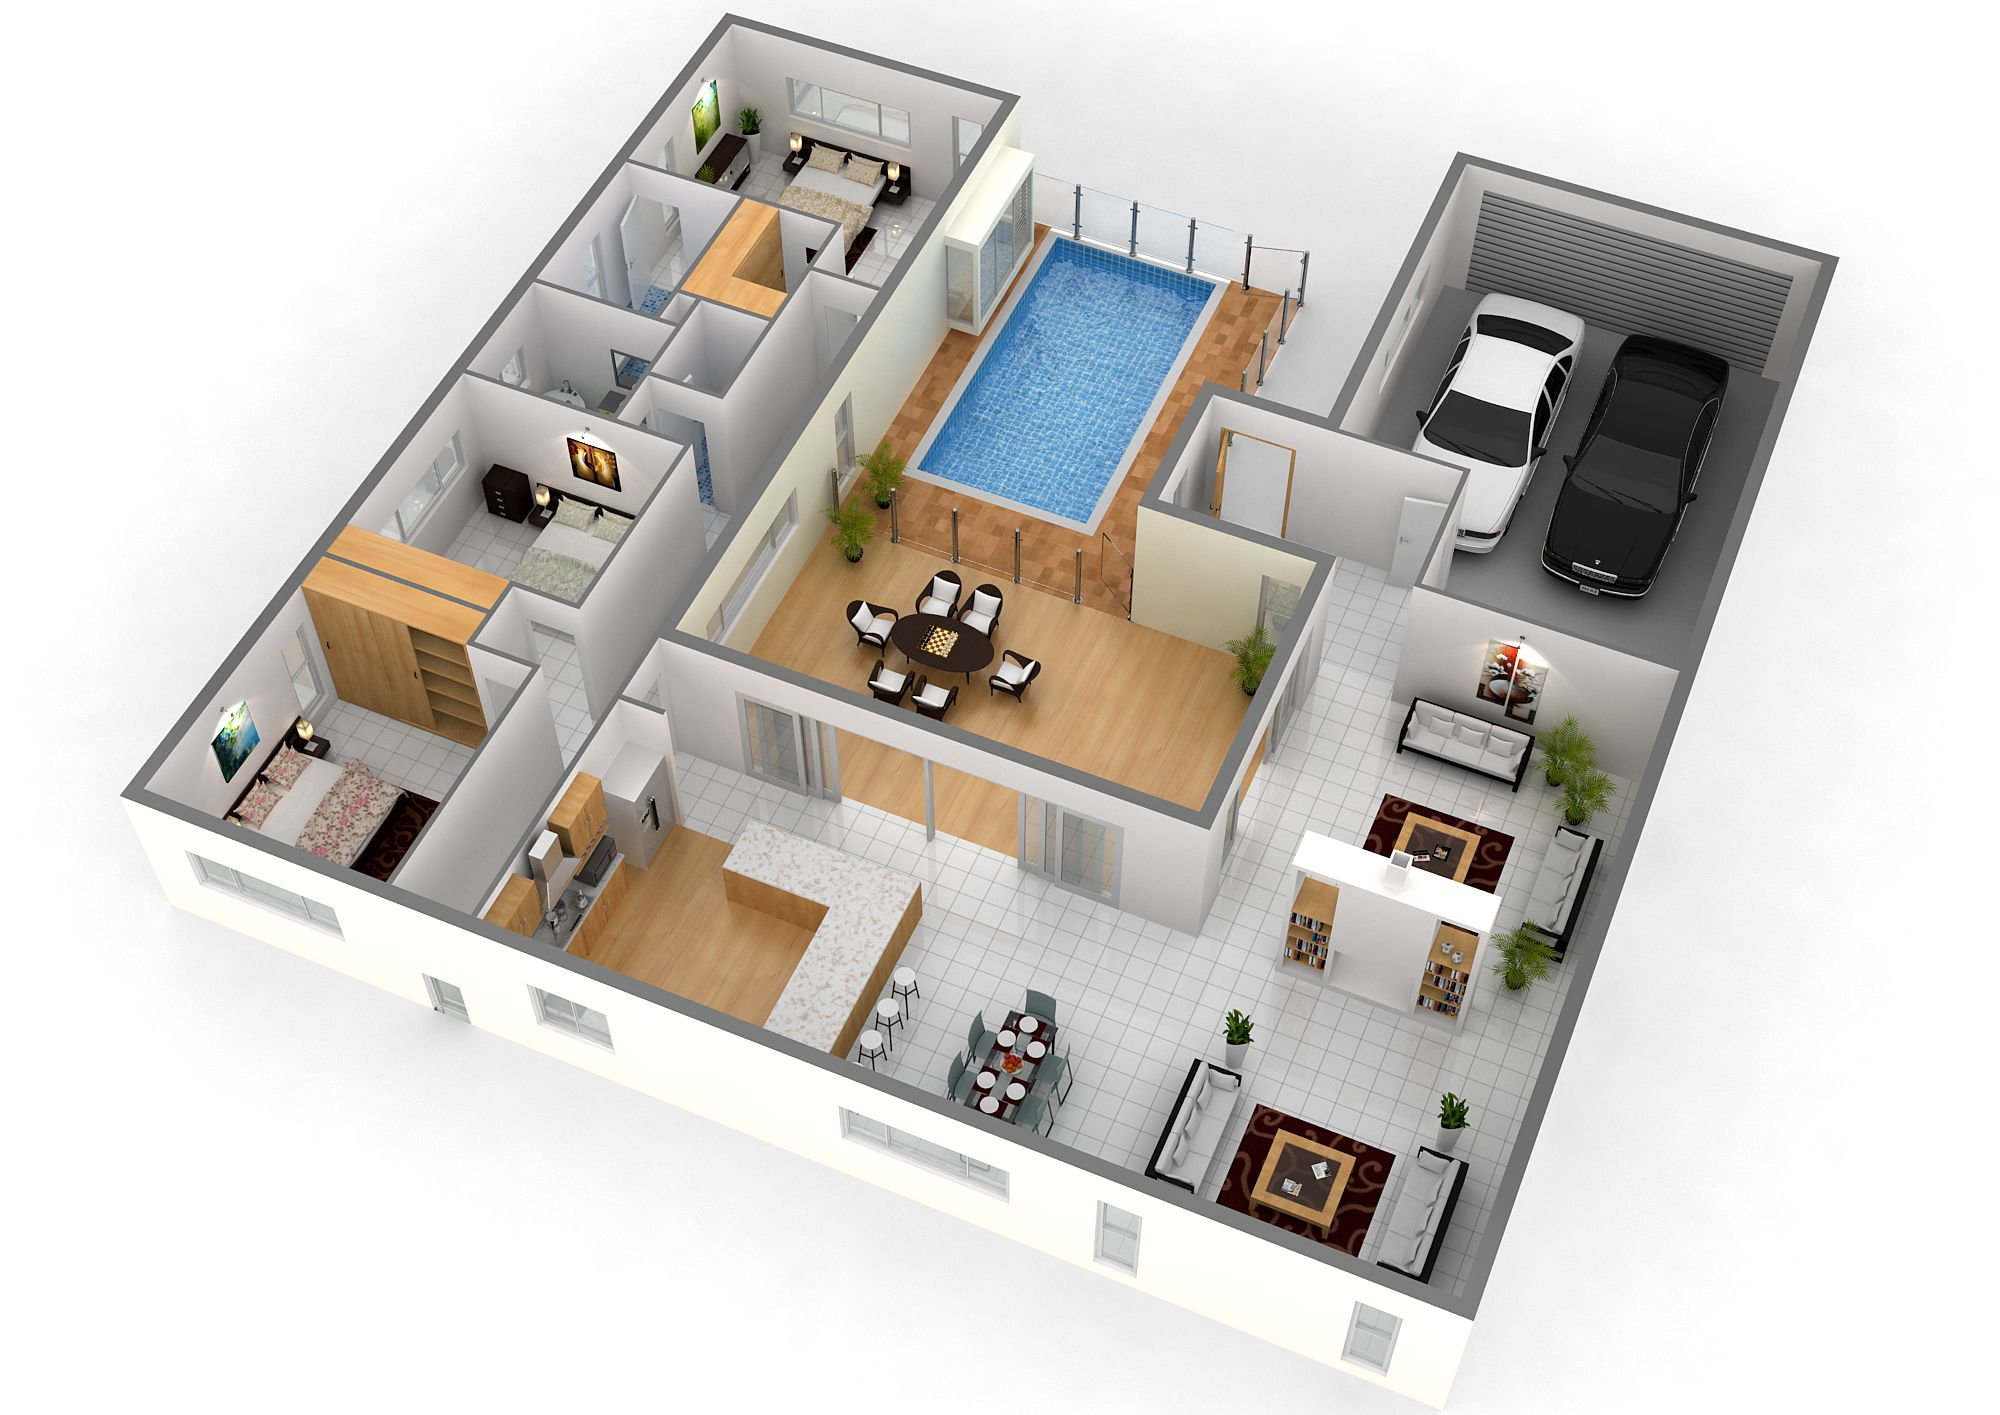 3D Gallery   Artist Impressions   3D Architectural Visualisation   3D  Architectural Rendering   3D Rendering   3D Floor Plans   2D Floor Plans    Brisbane ...